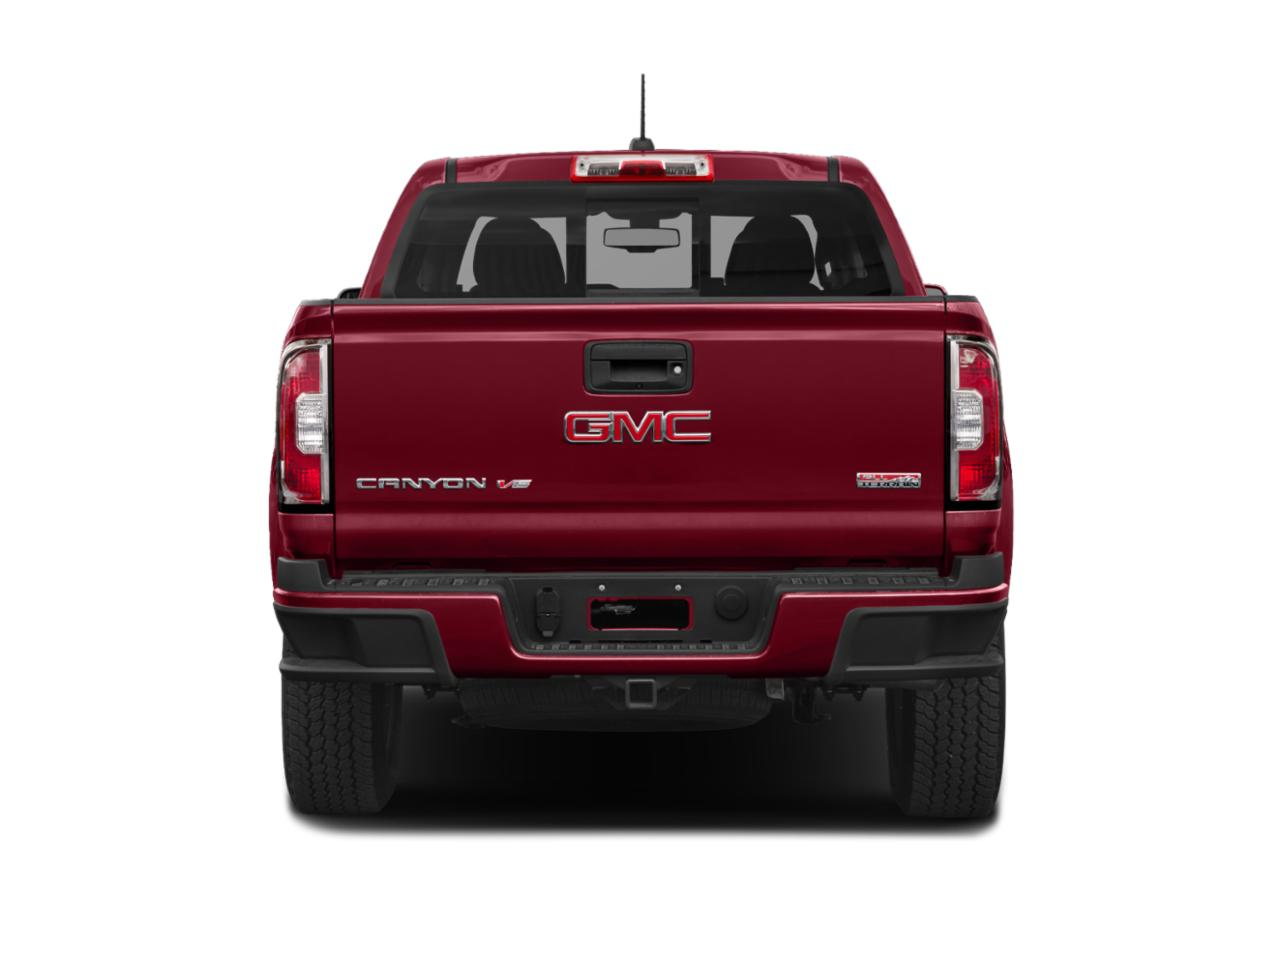 Used 2019 Gmc Canyon Crew Cab Short Box 4 Wheel Drive All Terrain W Leather In Summit White For Sale In Beresford South Dakota E6187